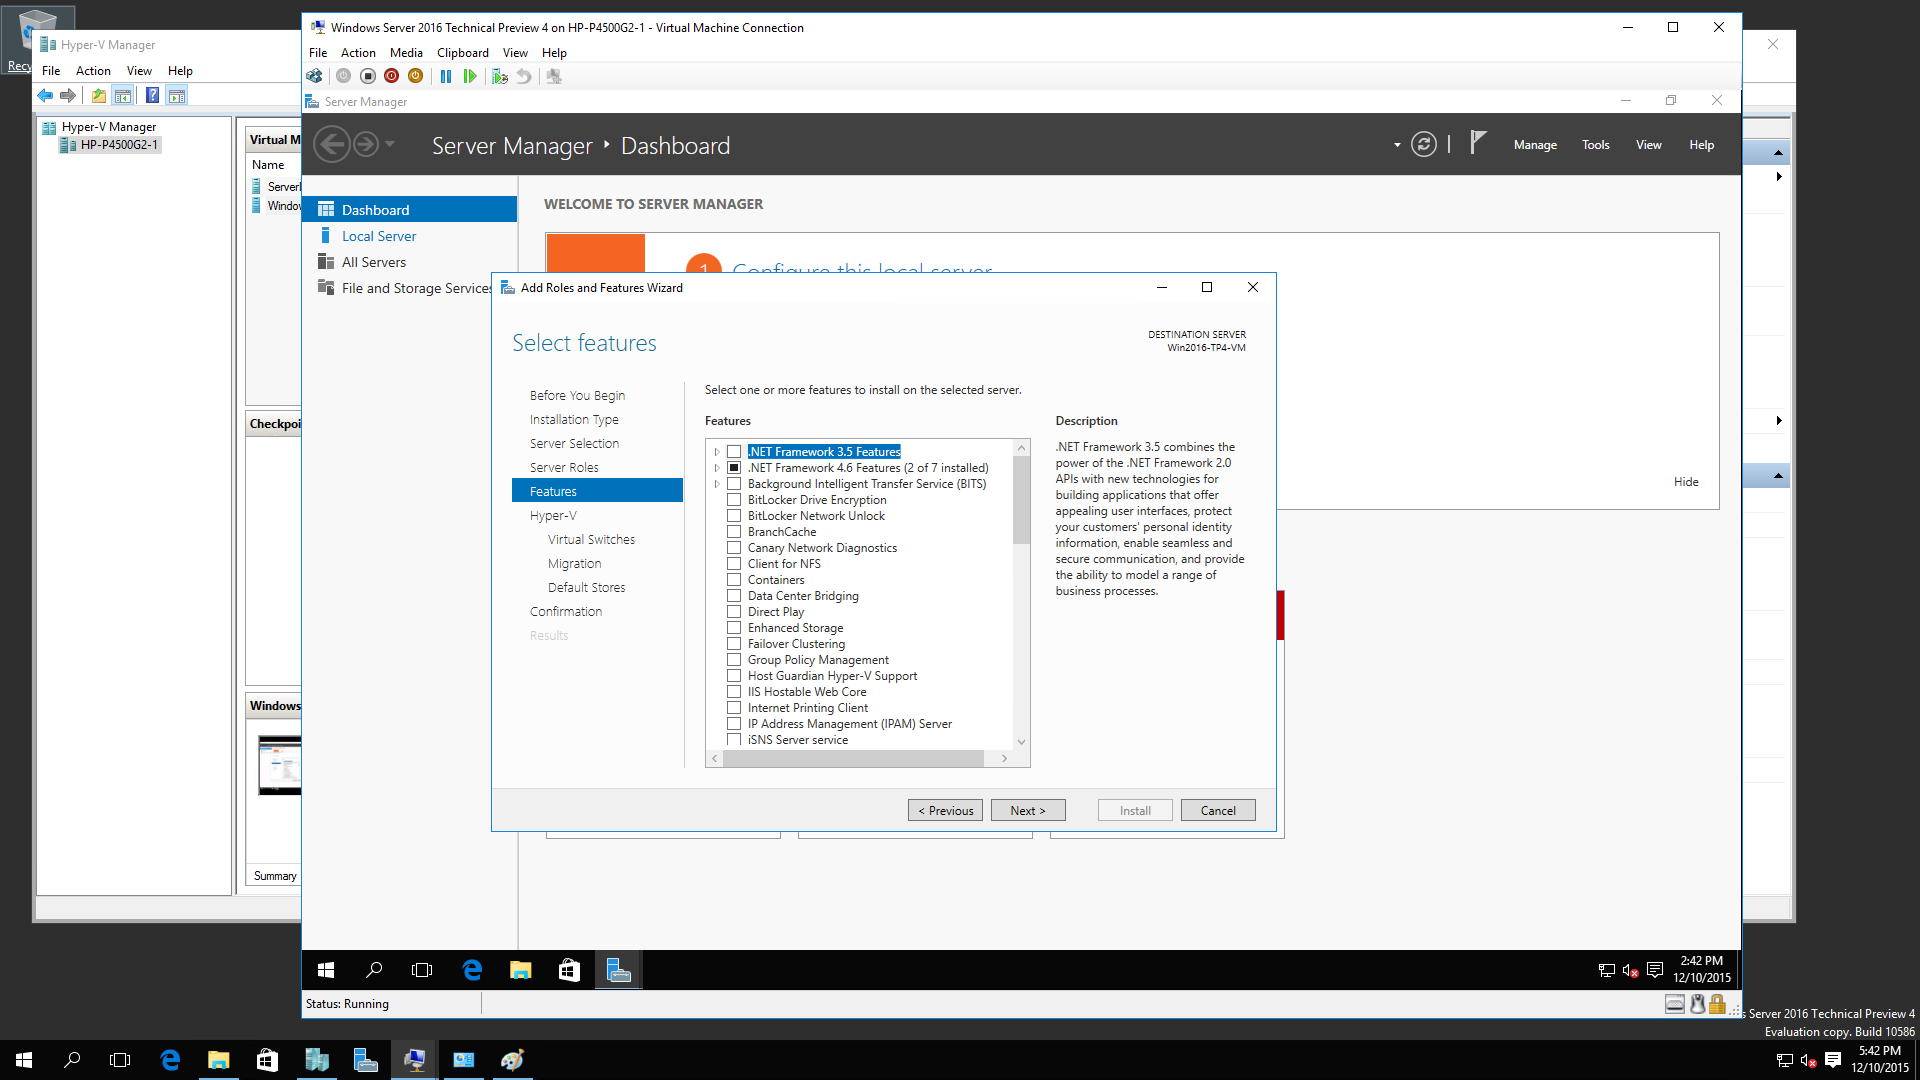 Windows 2016 R2 TP4 Nested Virtualization 4